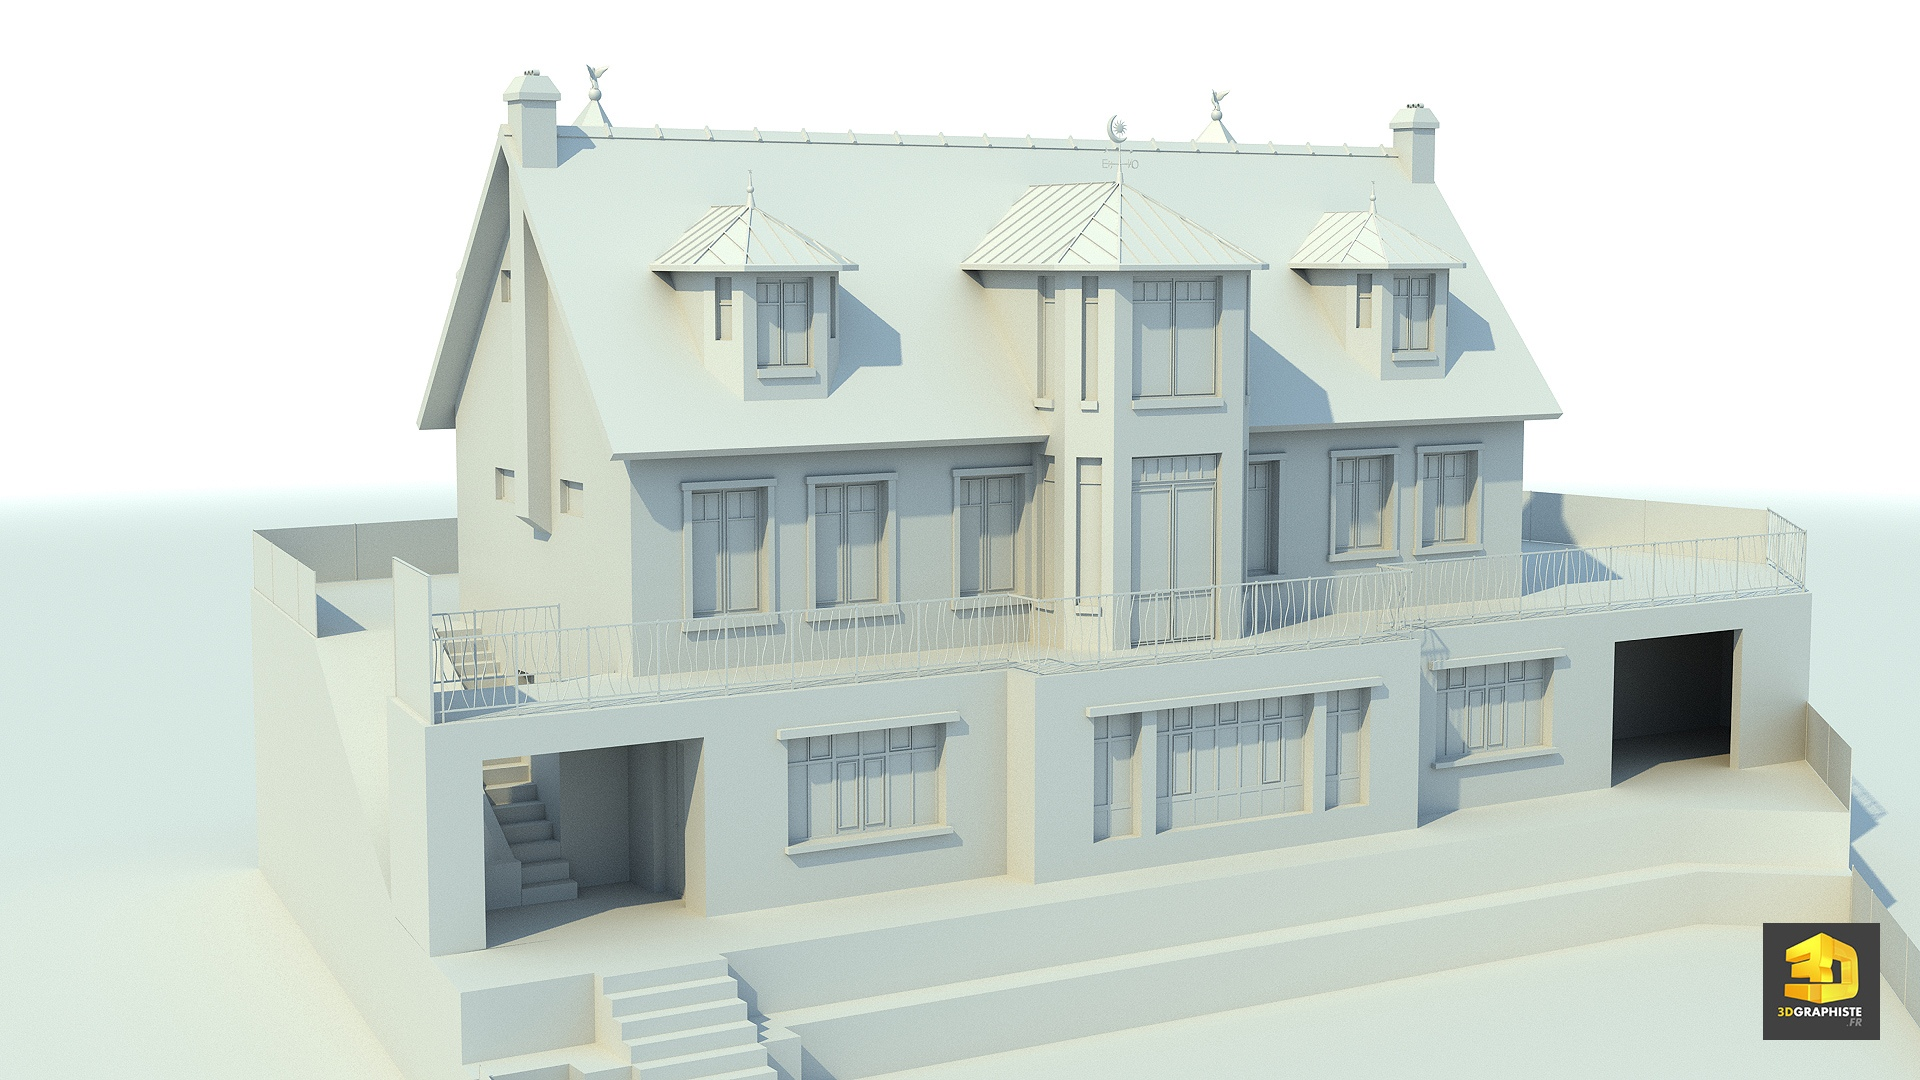 Mod lisation 3d pour l 39 architecture 3dgraphiste fr for Architecture contemporaine maison individuelle